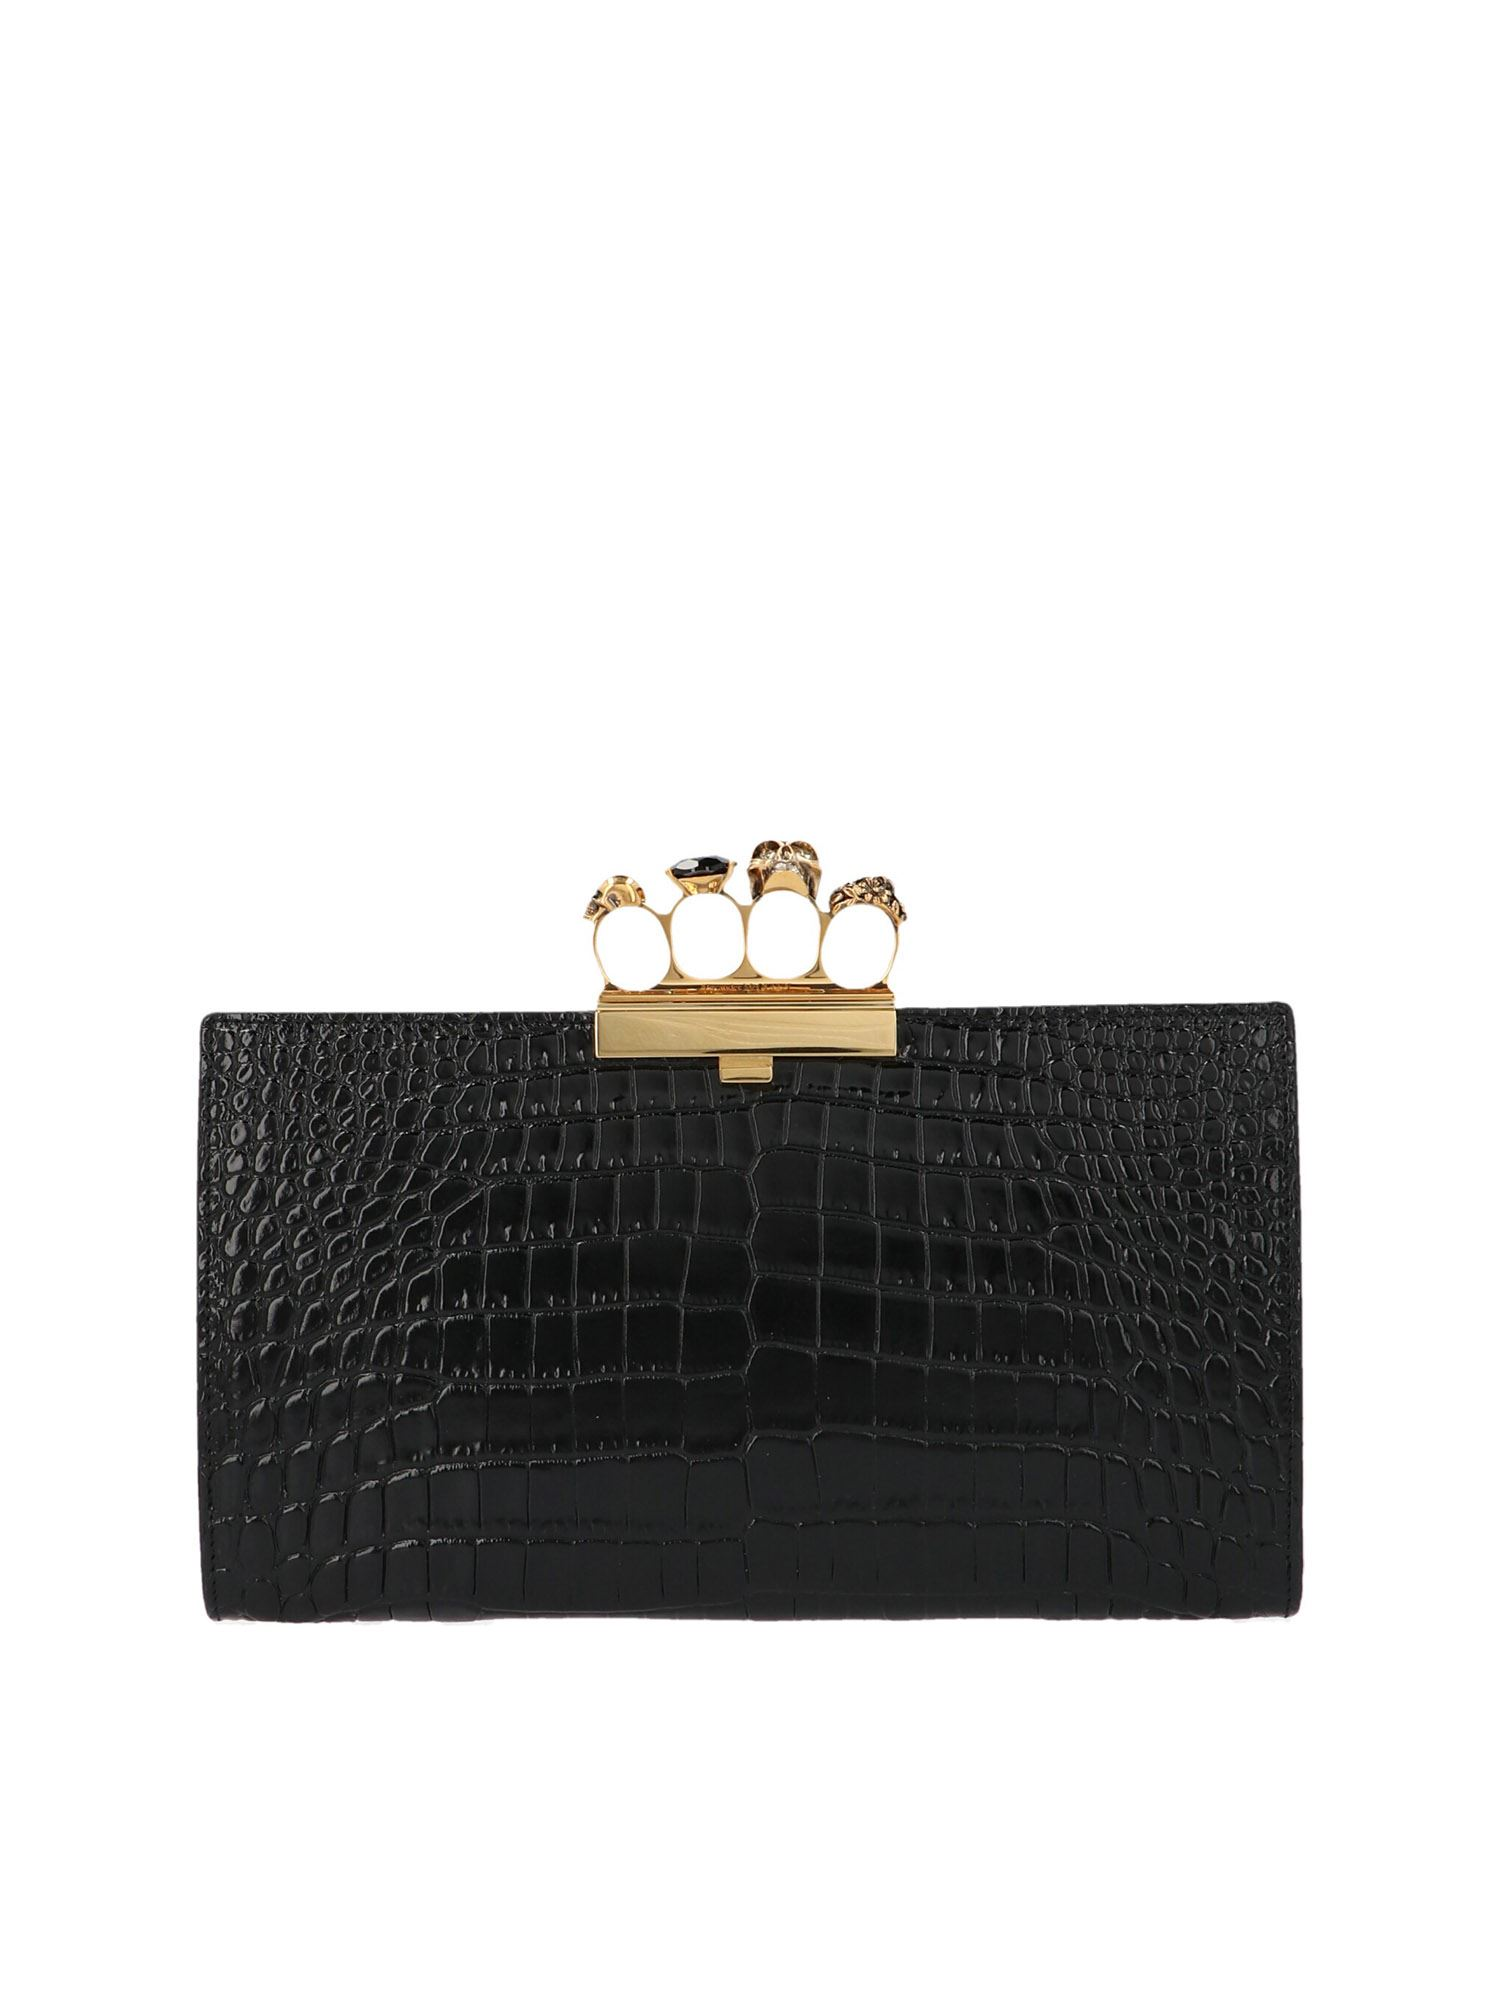 Alexander Mcqueen ALEXANDER MCQUEEN SKULL FOUR RINGS CLUTCH IN BLACK